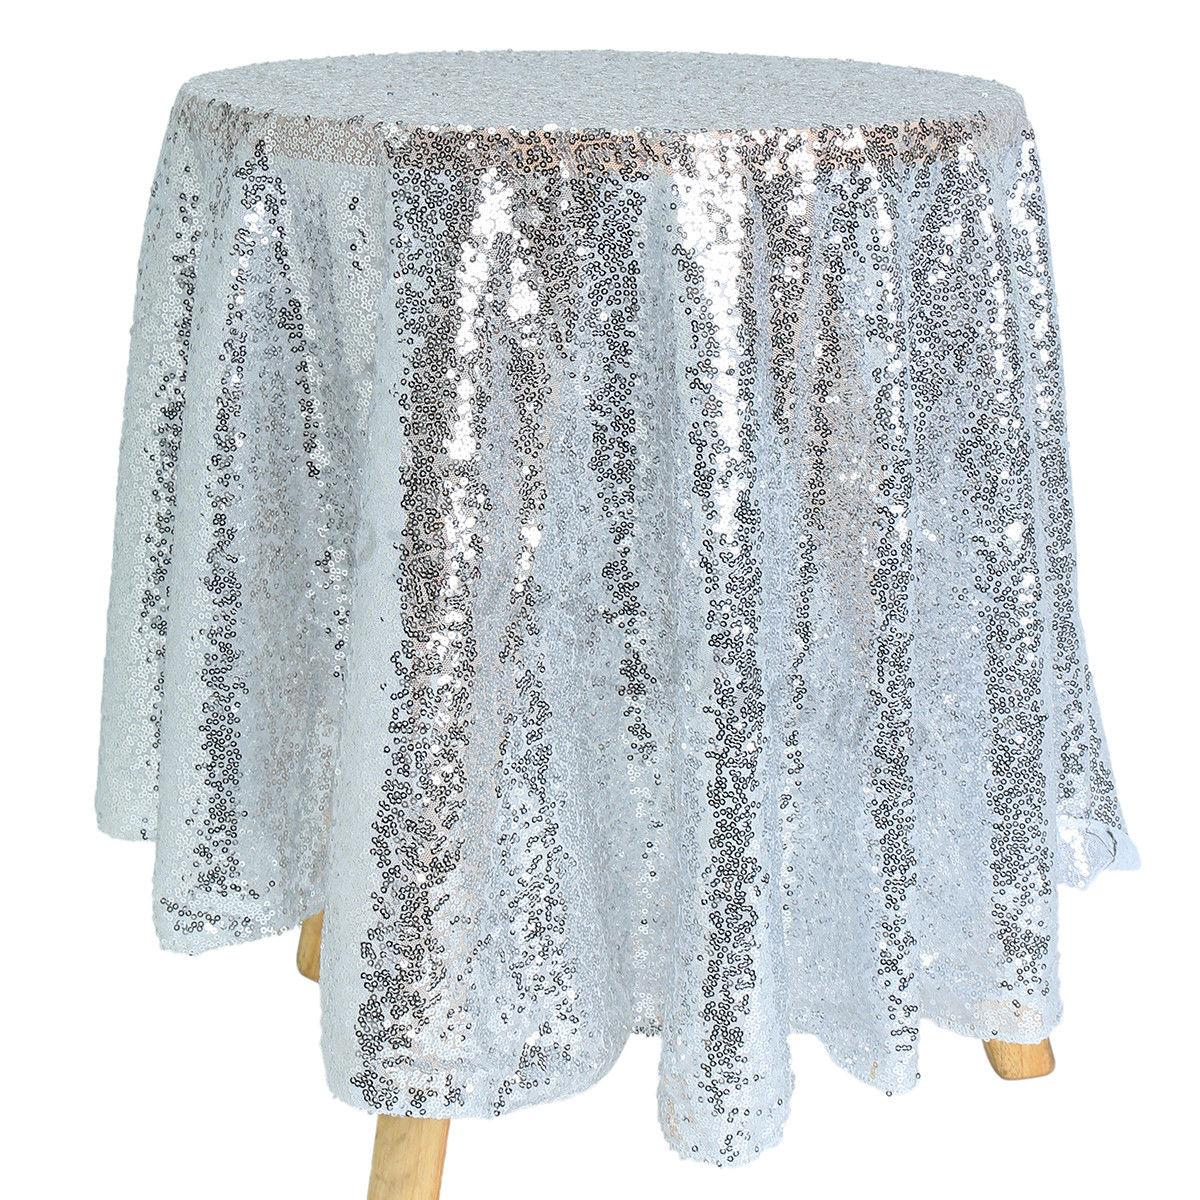 Tablecloth Cover For Party